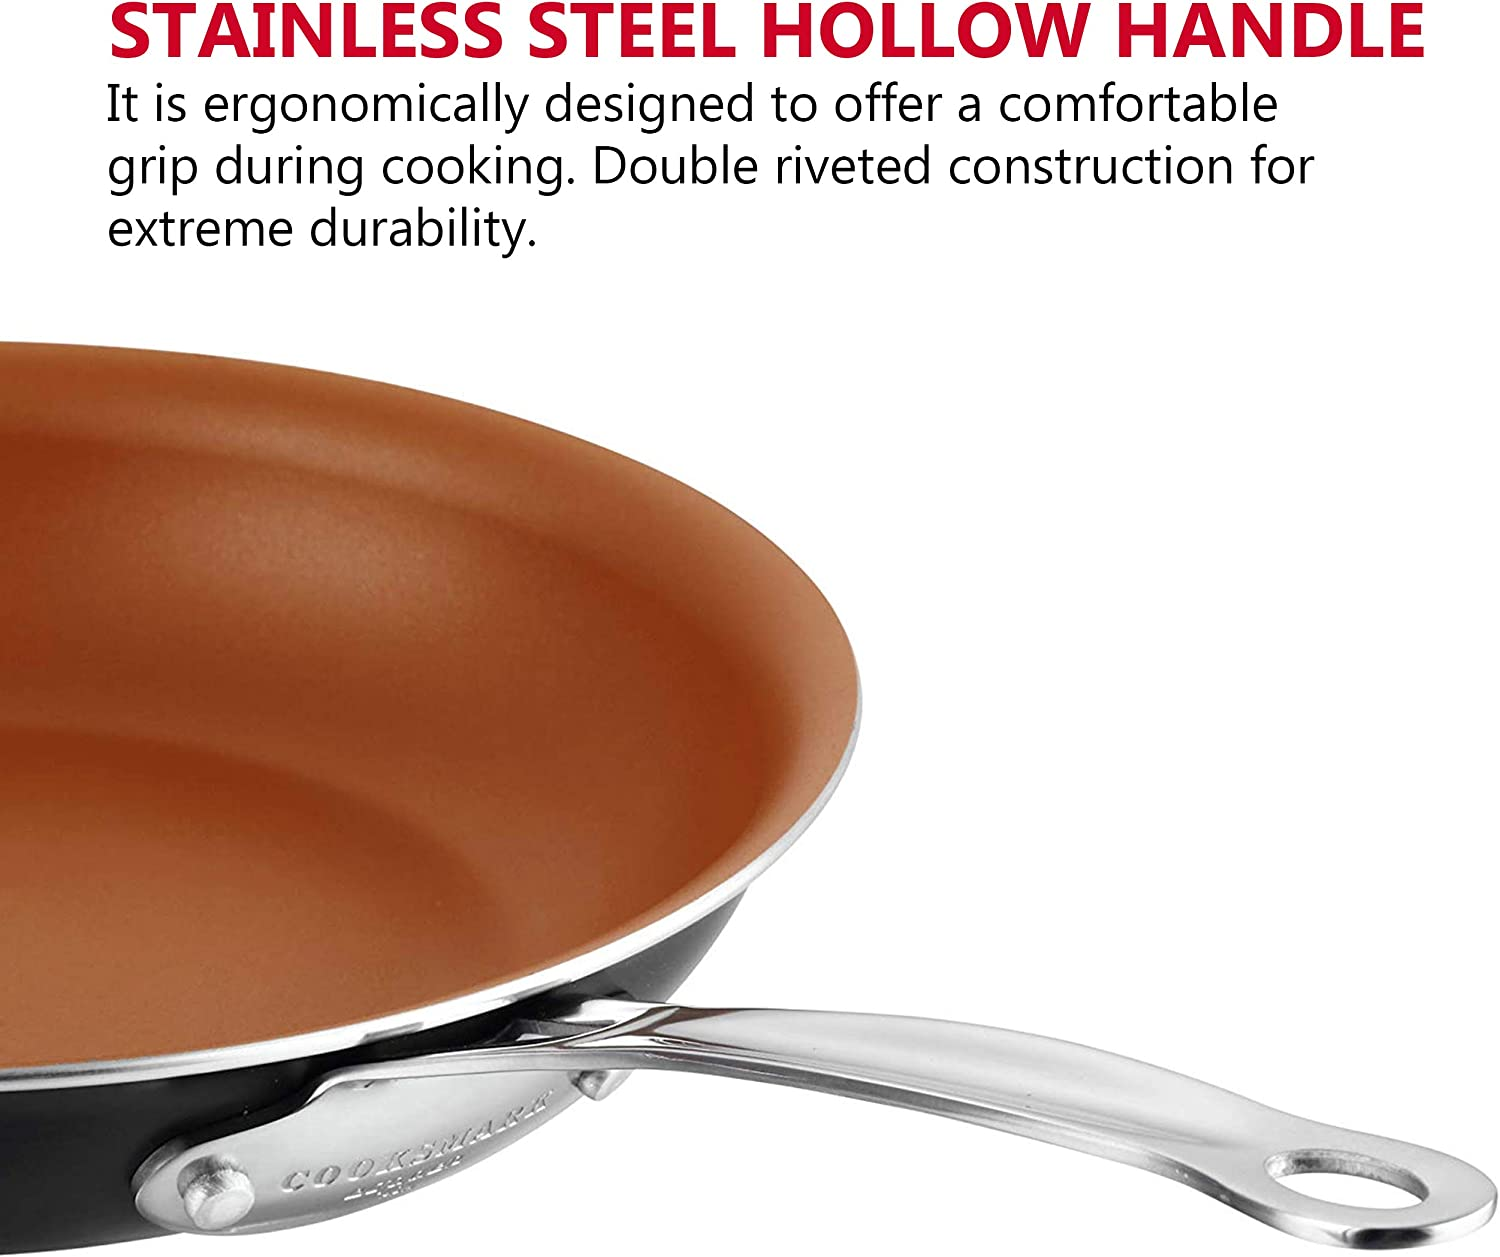 Black AMERICOOK 10 Inch Copper Frying Pan Non-Stick Deep Fry Pan Induction Oven Safe